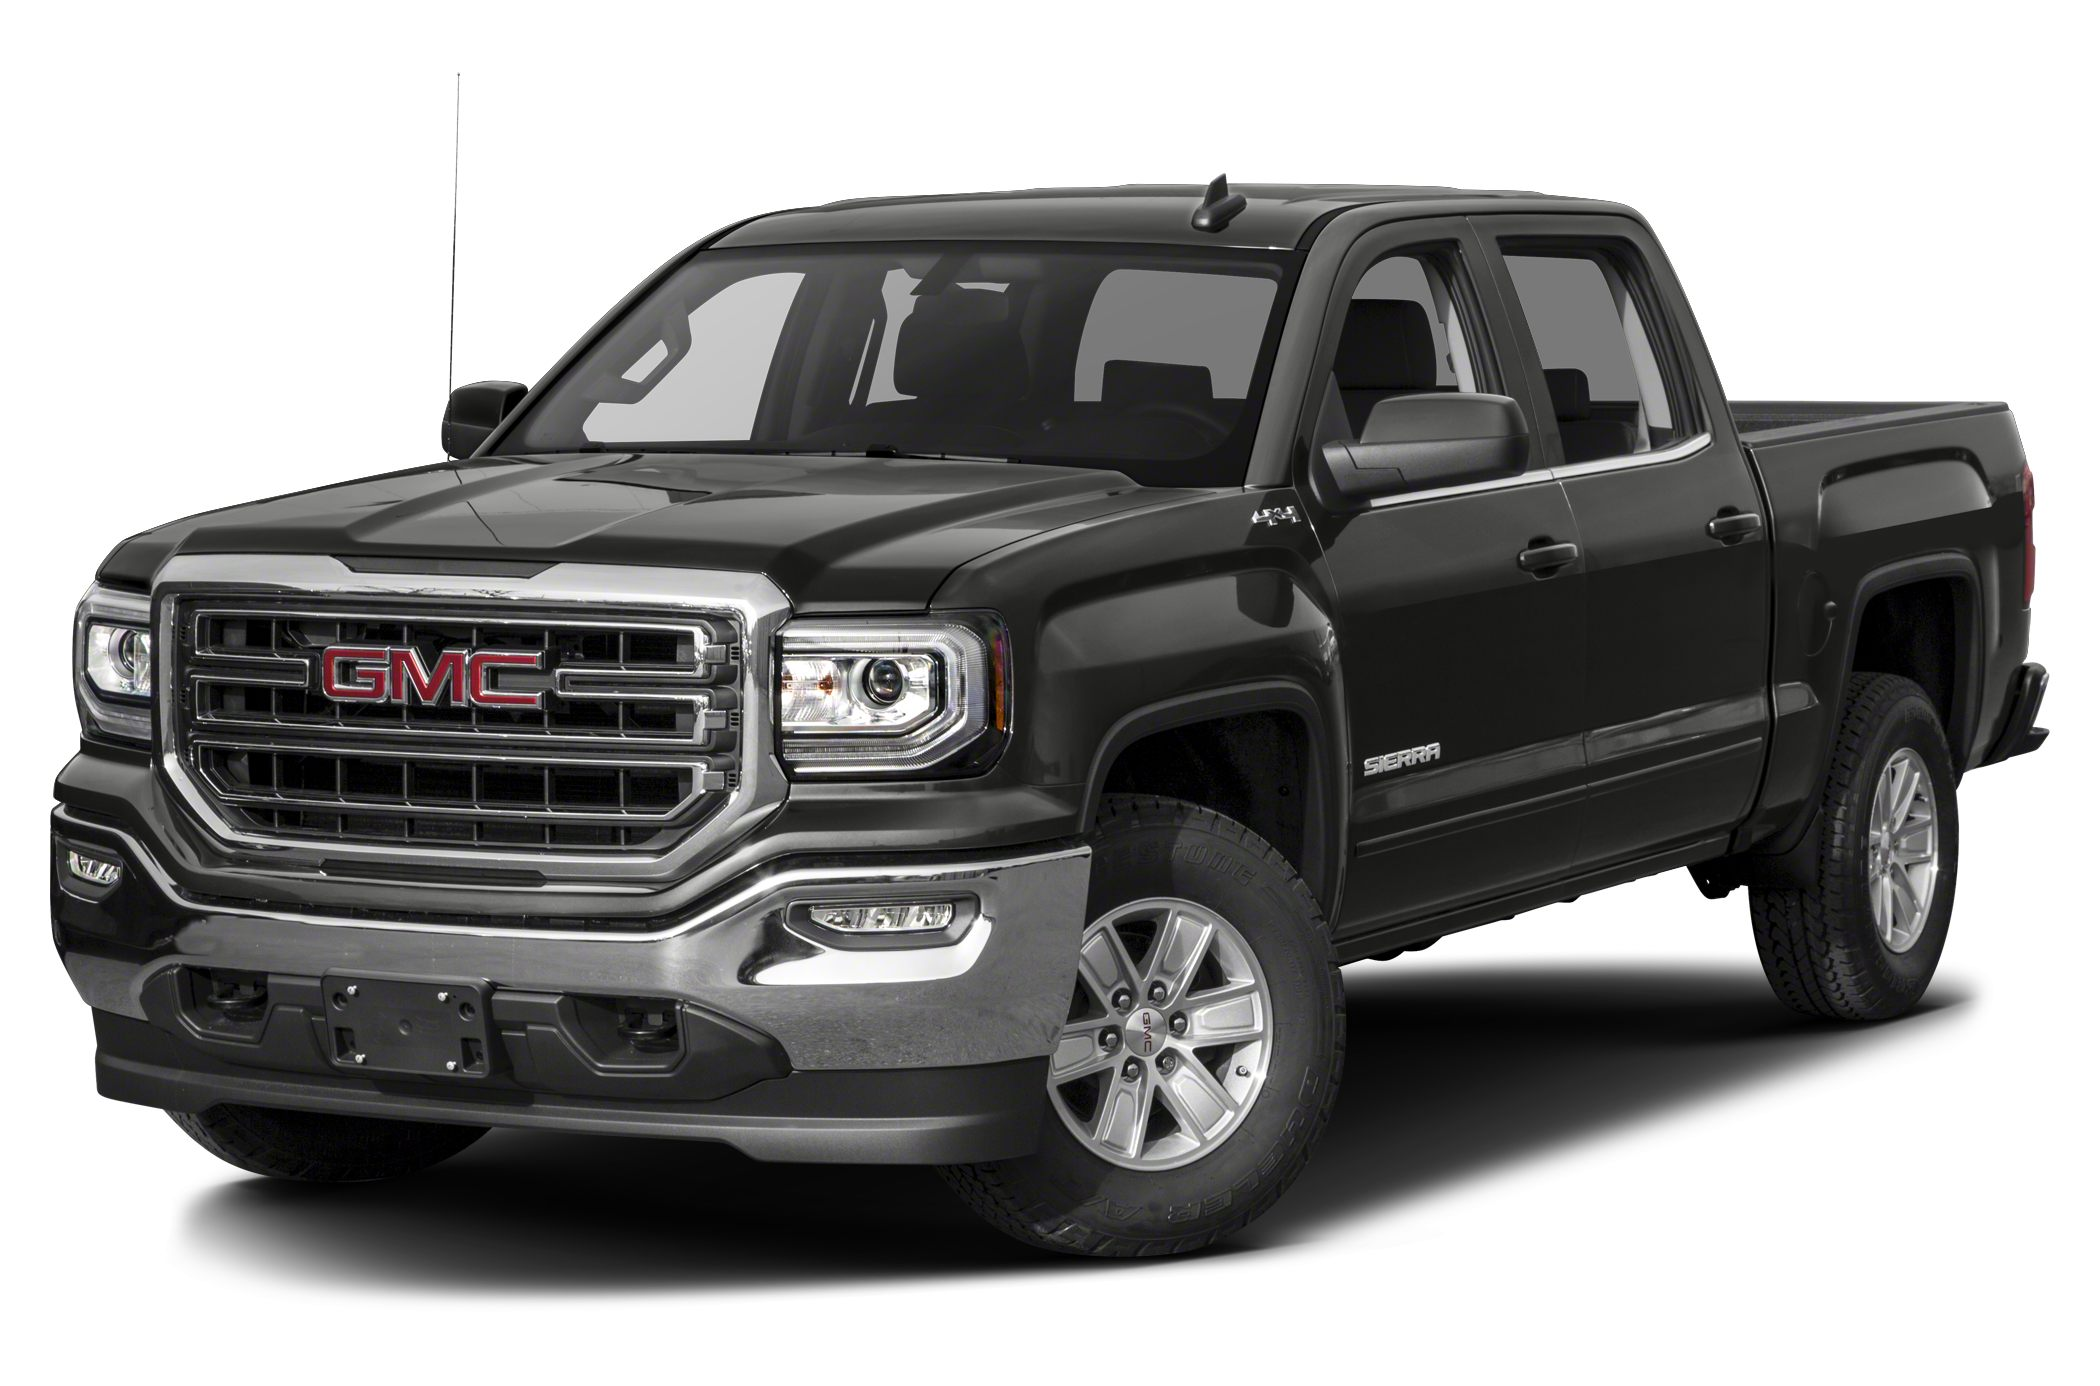 2016 Gmc Sierra 1500 Sle 4x4 Crew Cab 6 6 Ft Box 153 In Wb Specs And Prices